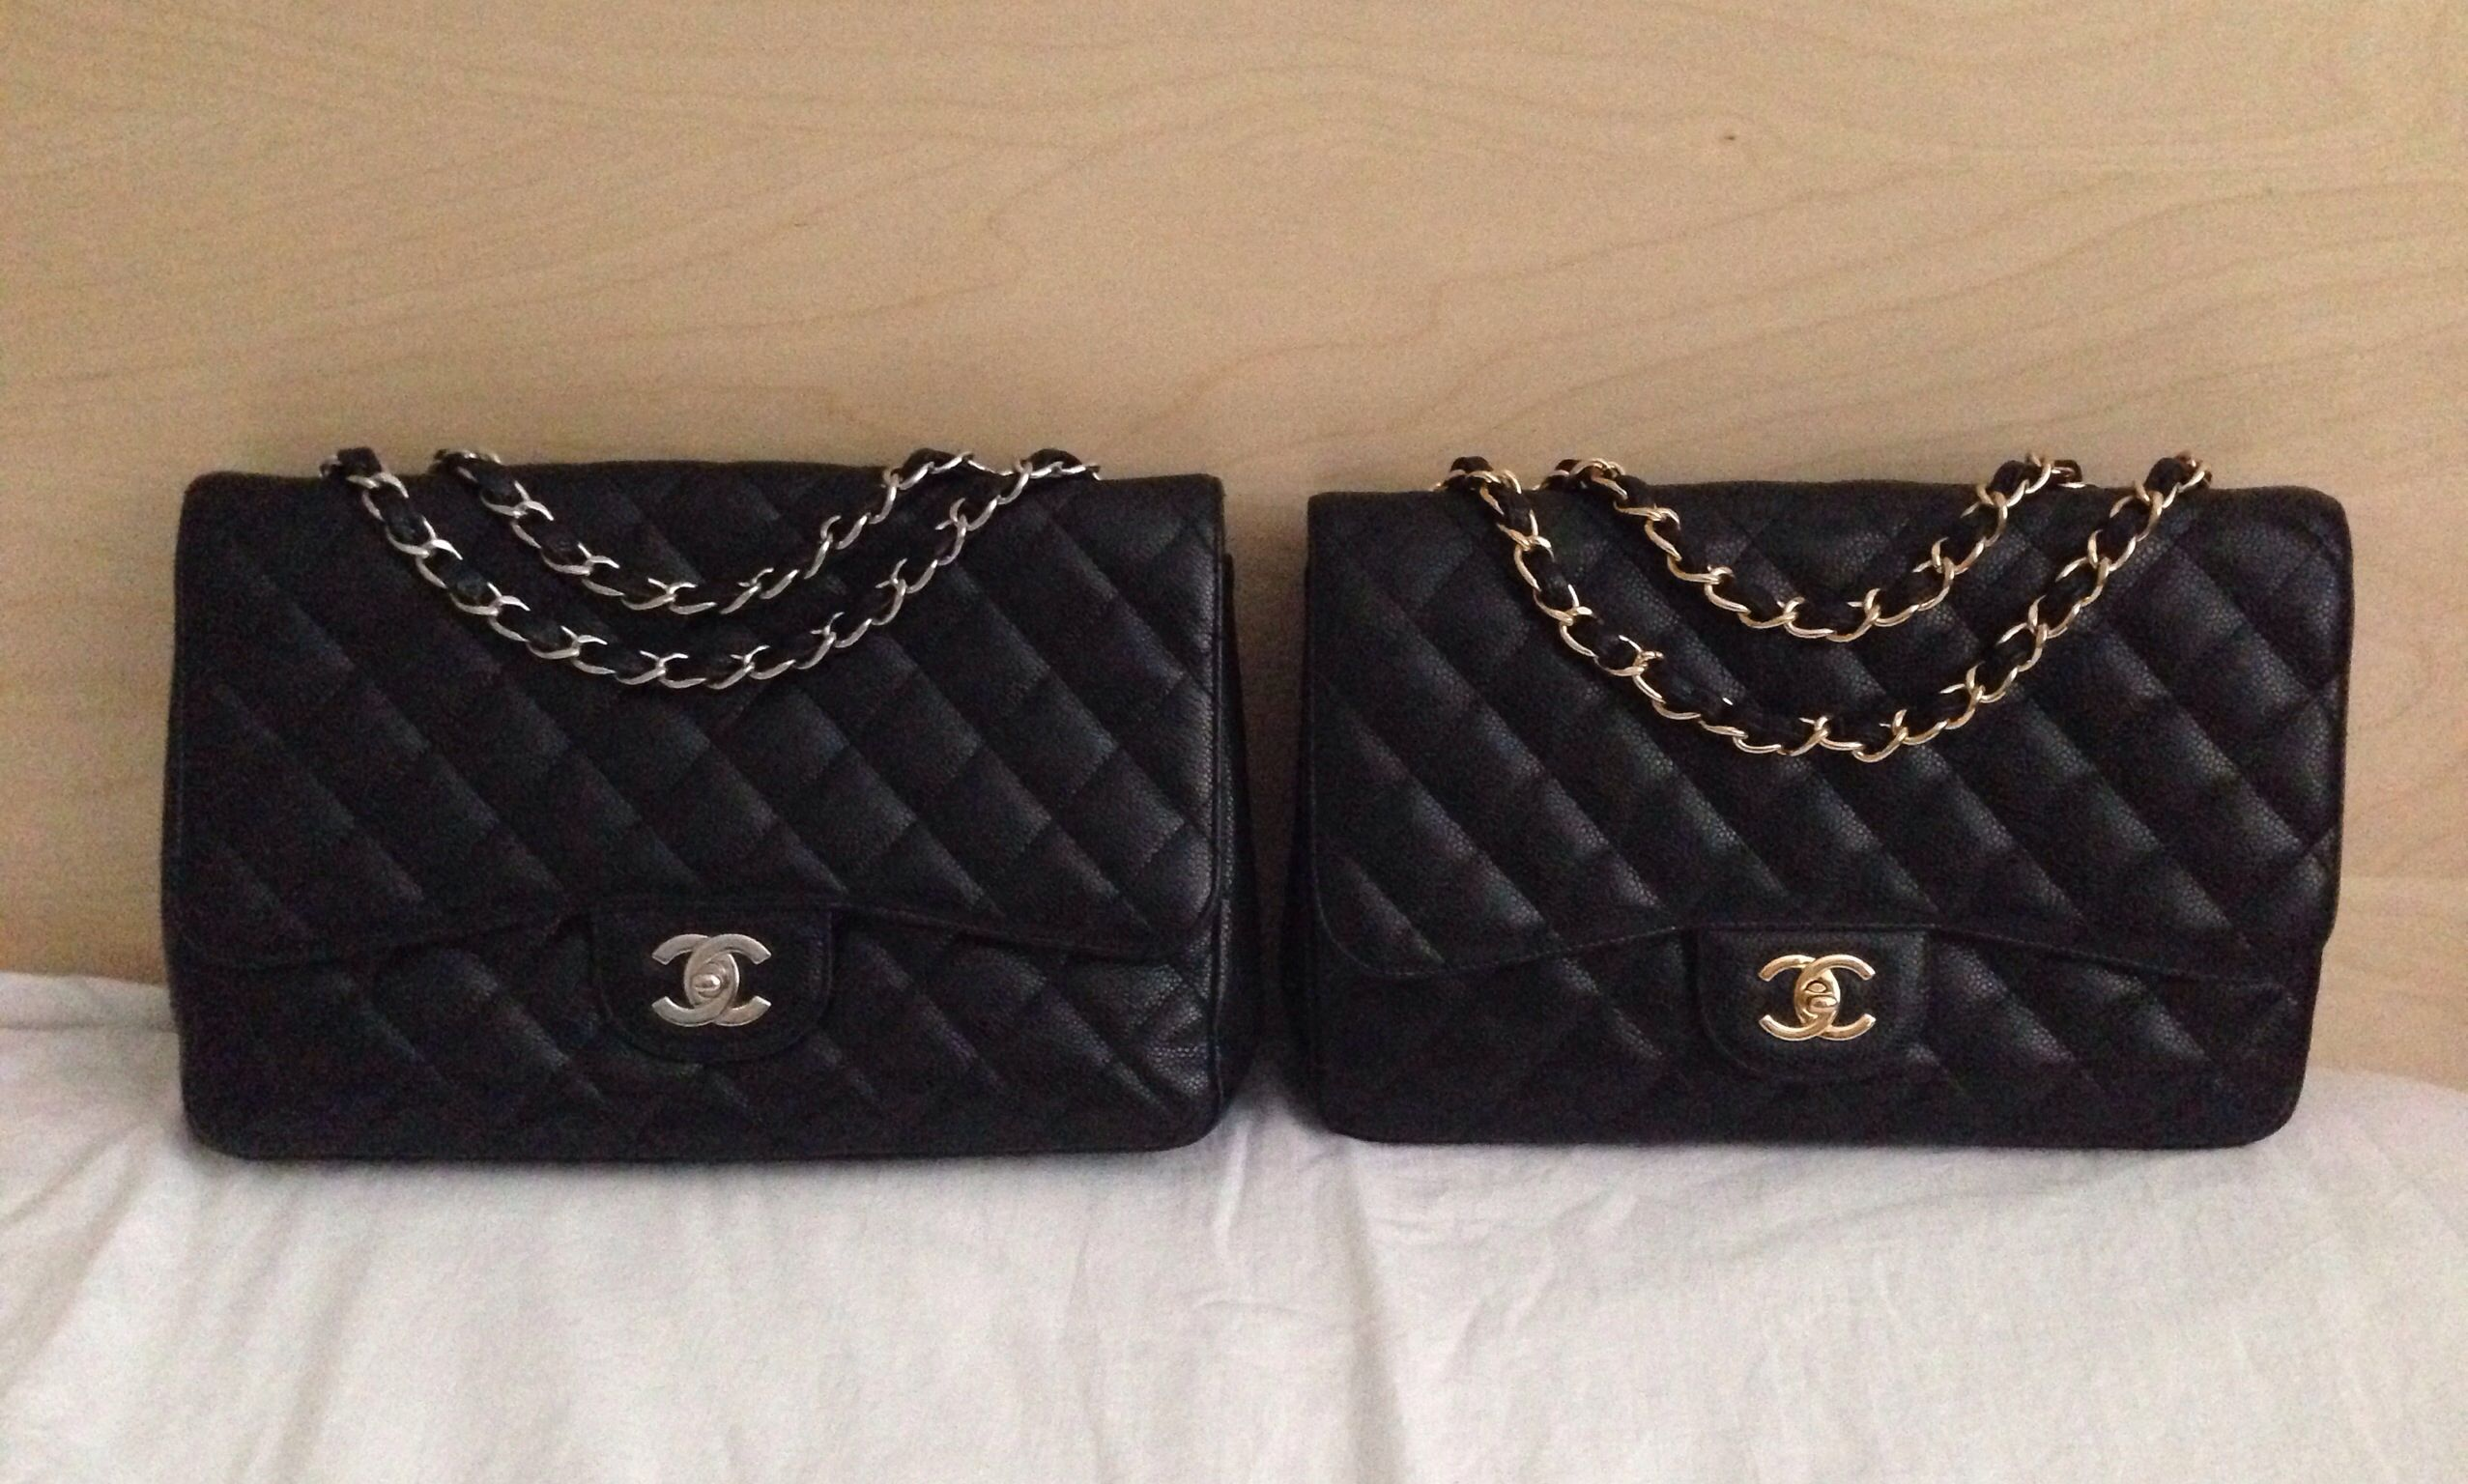 db087c56eb77 Chanel Twin. Jumbo Caviar SHW and GHW | Bags/accessories Collection ...